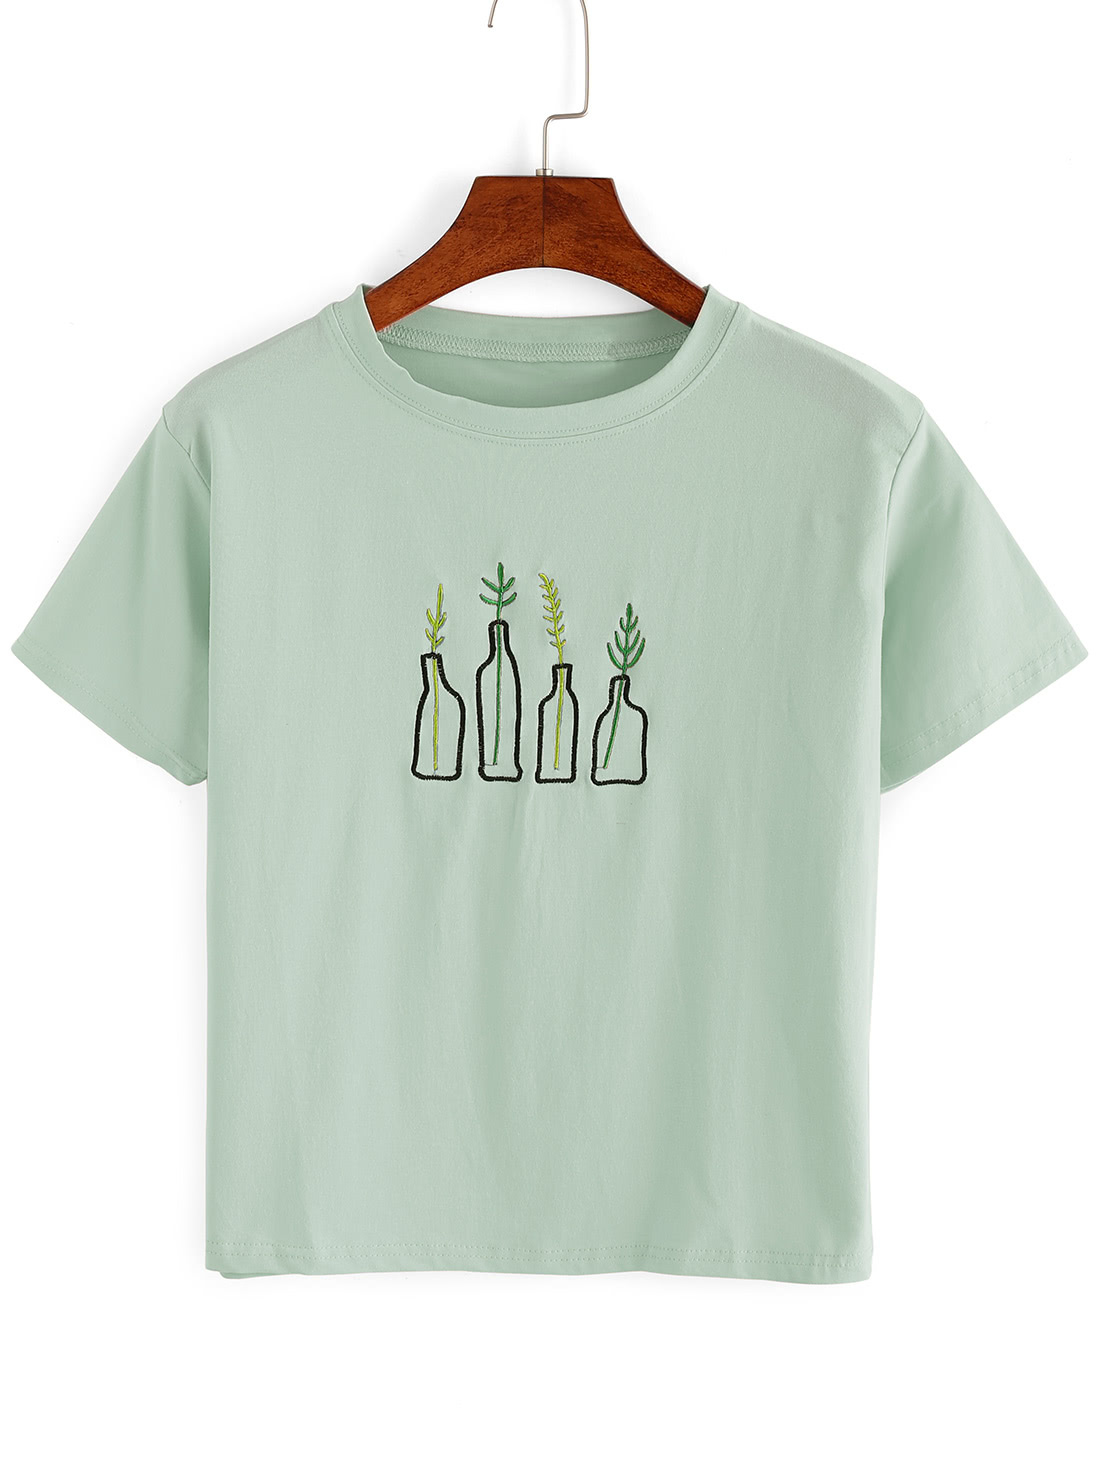 T Short Green Plant Embroidered T Shirt